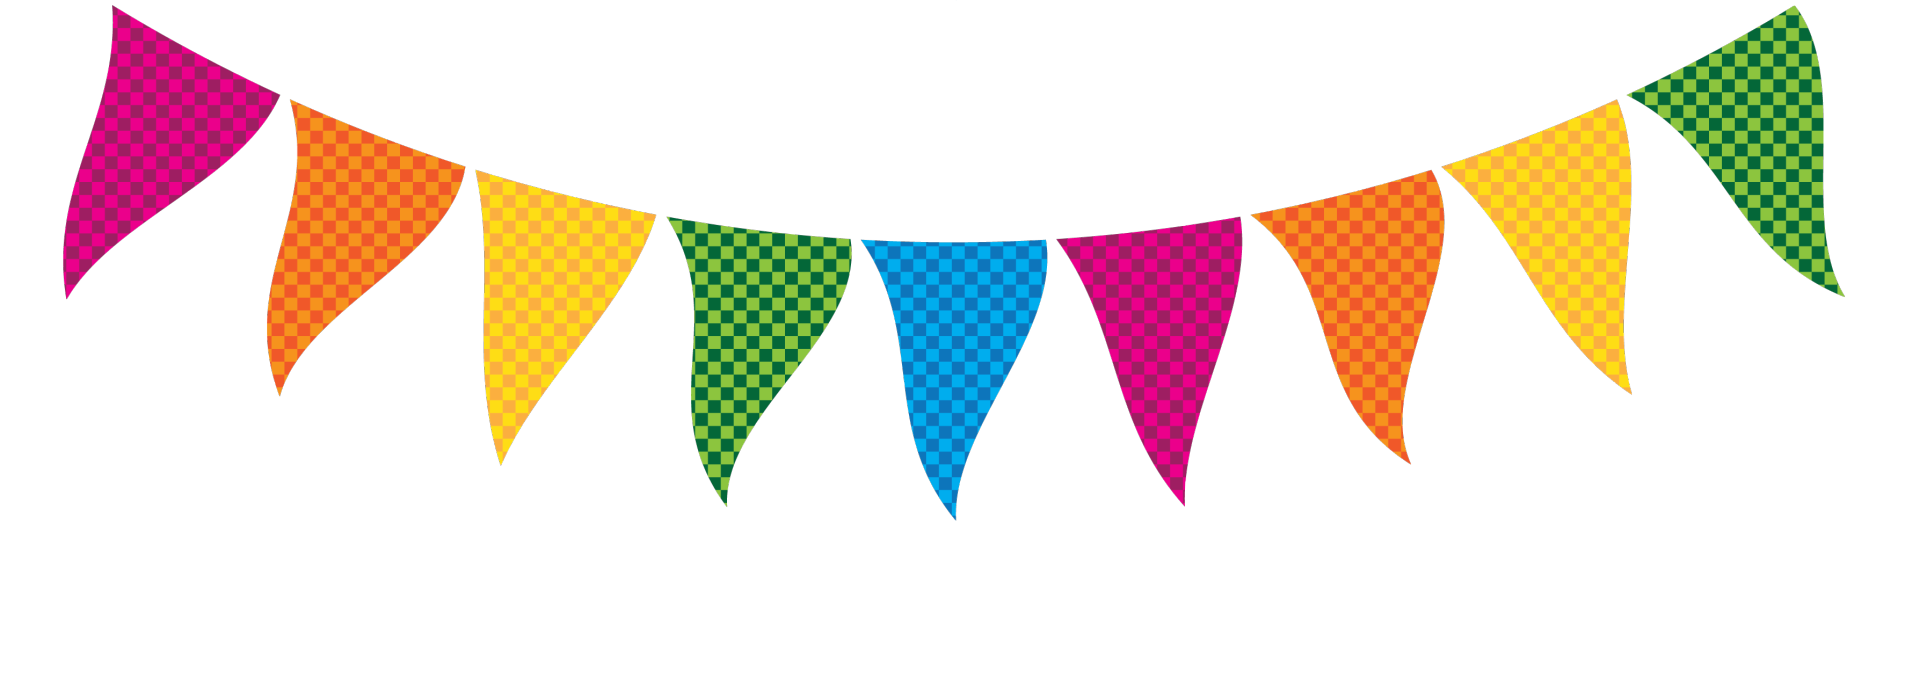 1920x685 Bunting Clipart Party Flag